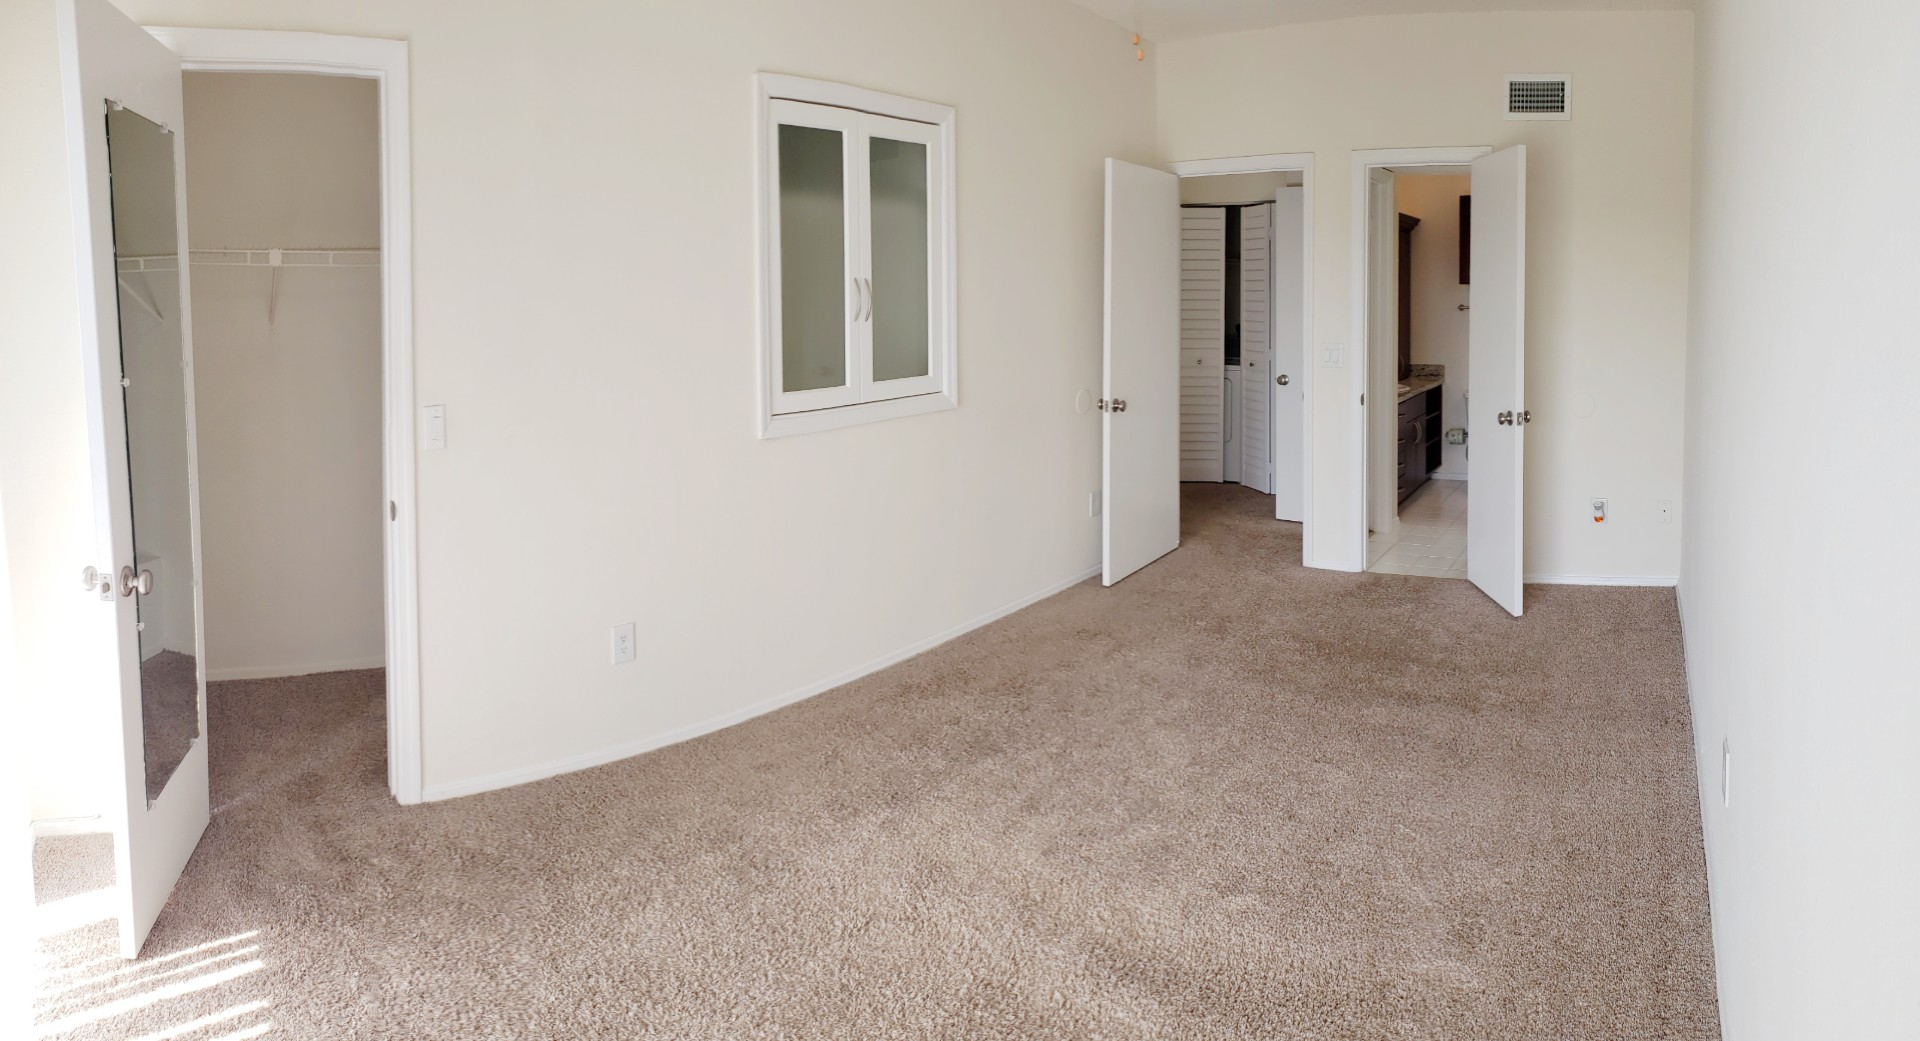 Floor Carpeted at Waterford Point Apartments in Miami, Florida